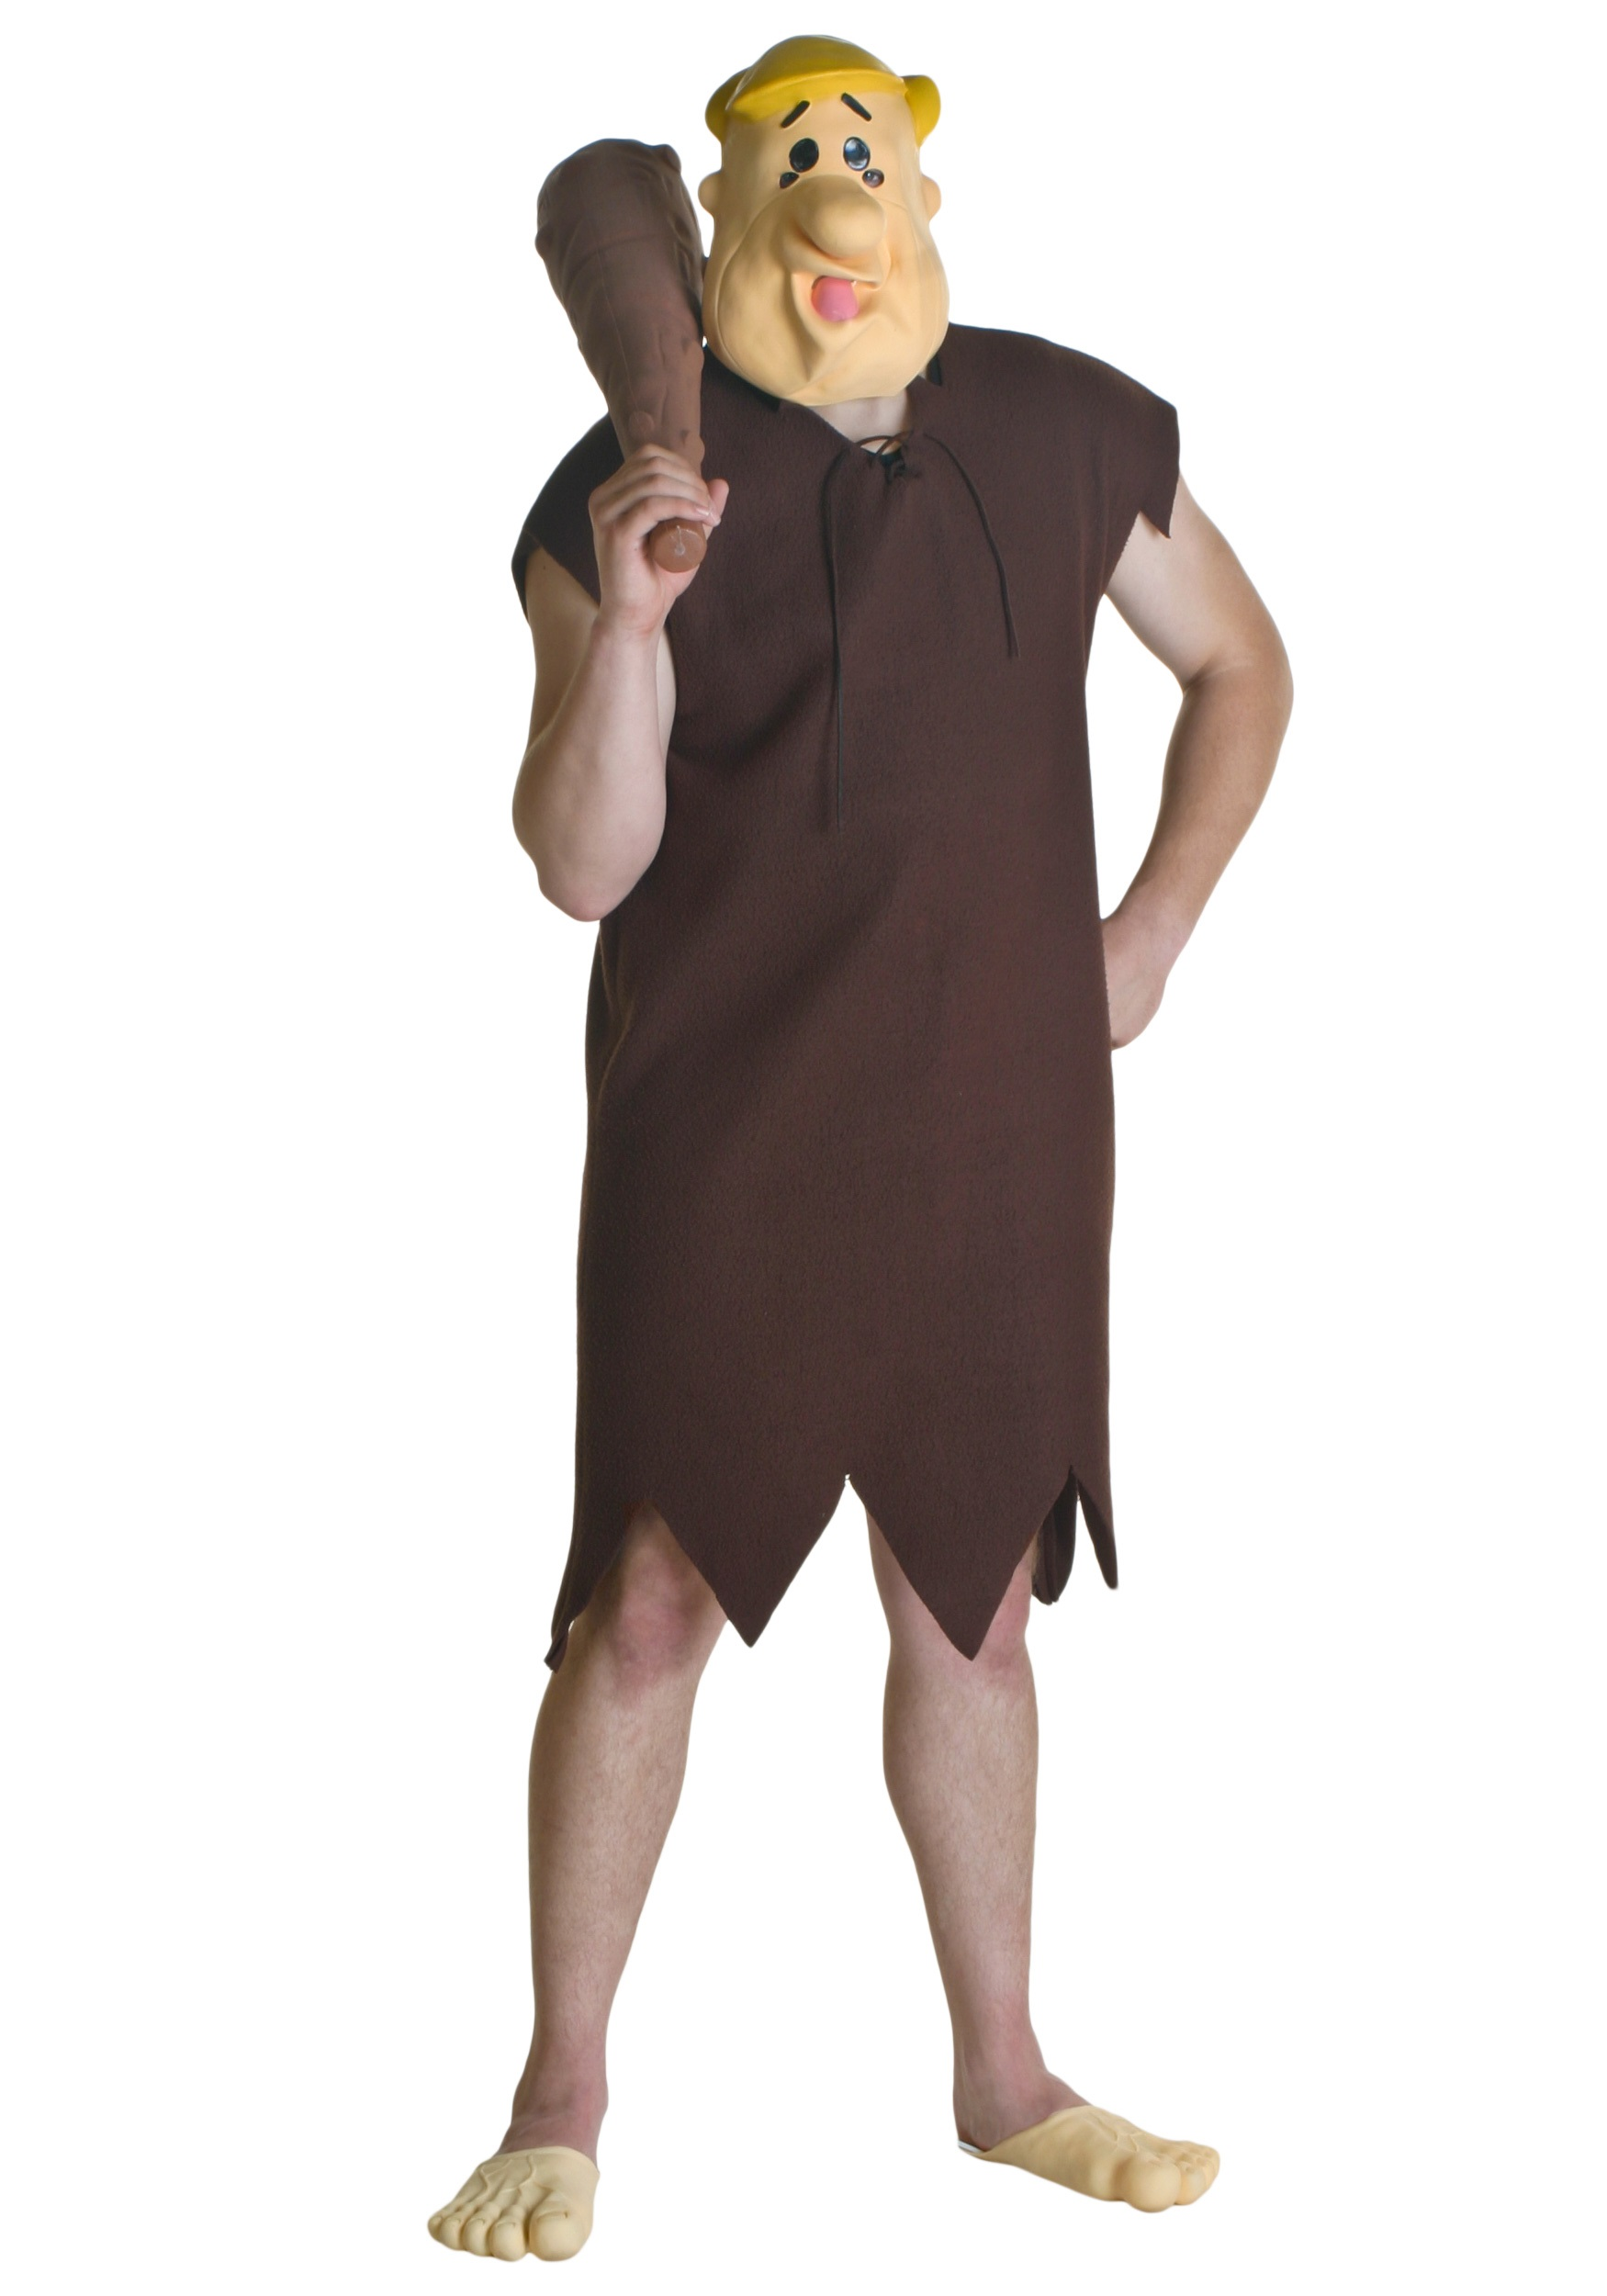 Adult Barney Rubble Flintstone Costume  sc 1 st  Costumes Galore : fred flintstone costume  - Germanpascual.Com